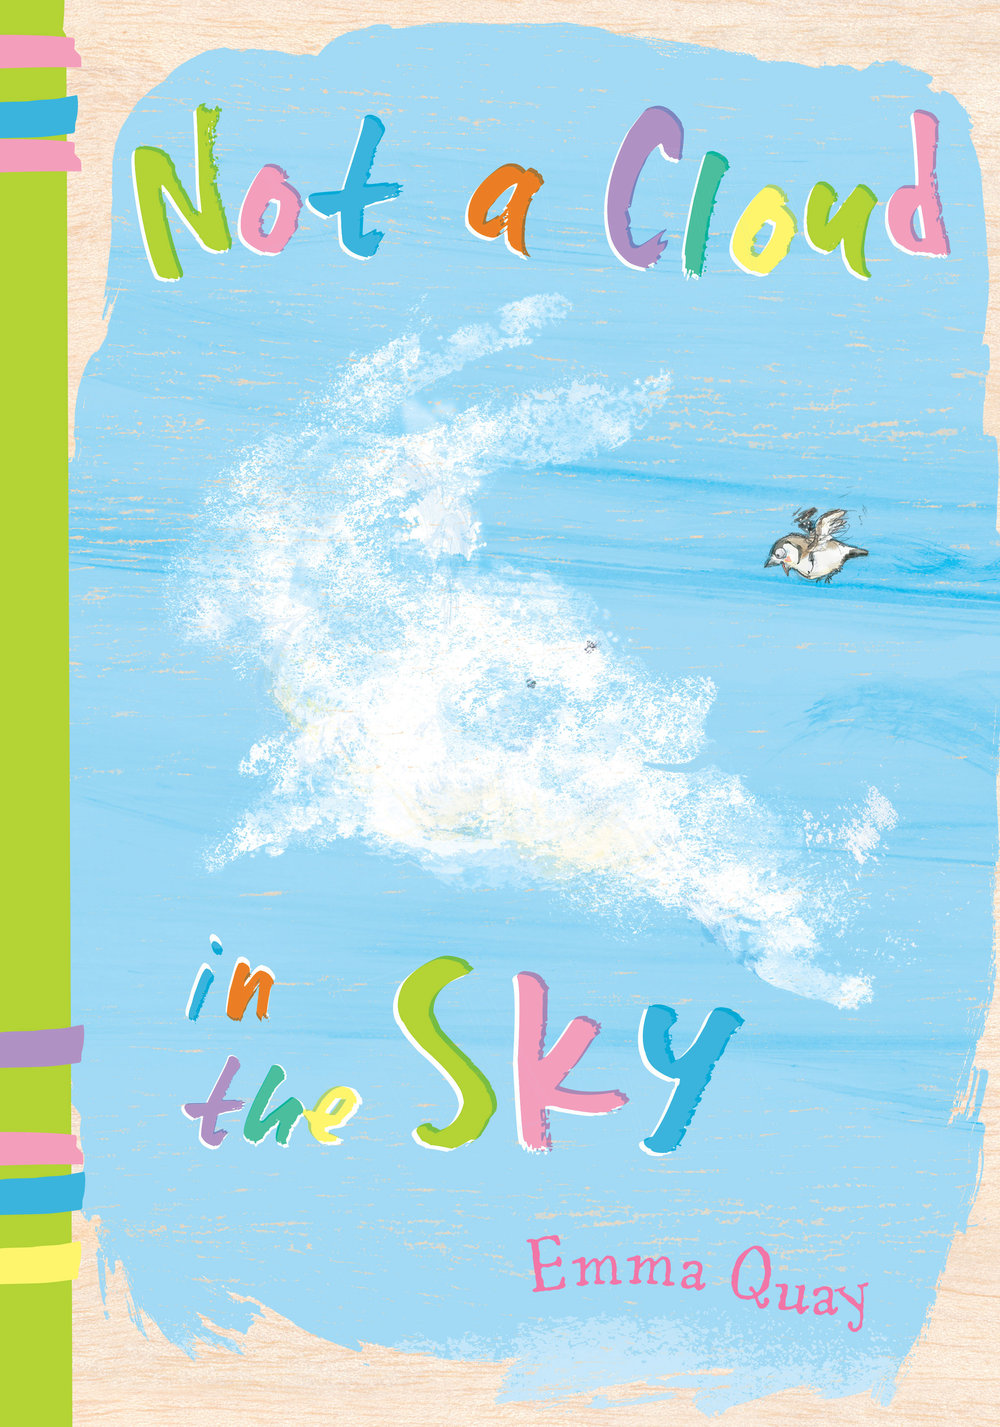 NOT A CLOUD IN THE SKY by Emma Quay (ABC Books) http://www.emmaquay.com